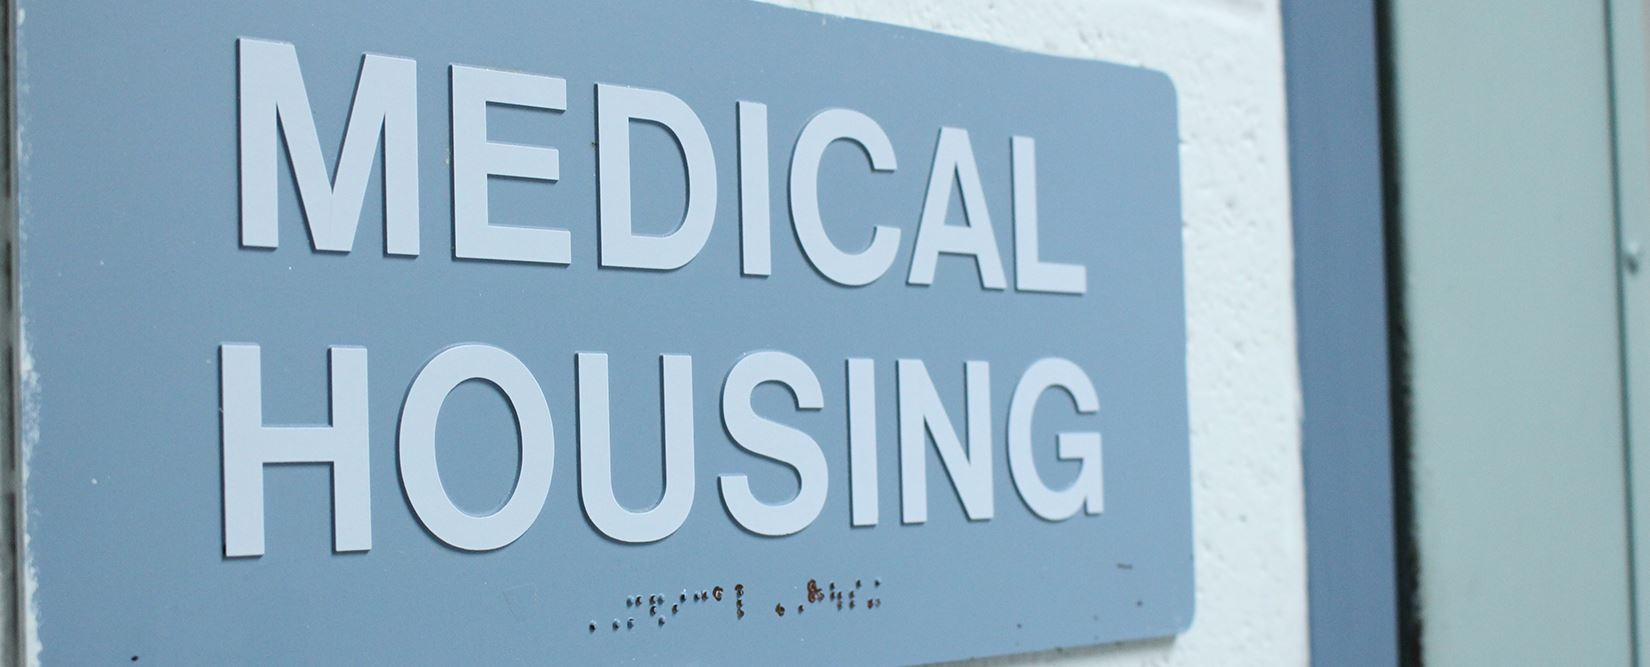 Medical housing sign in jail